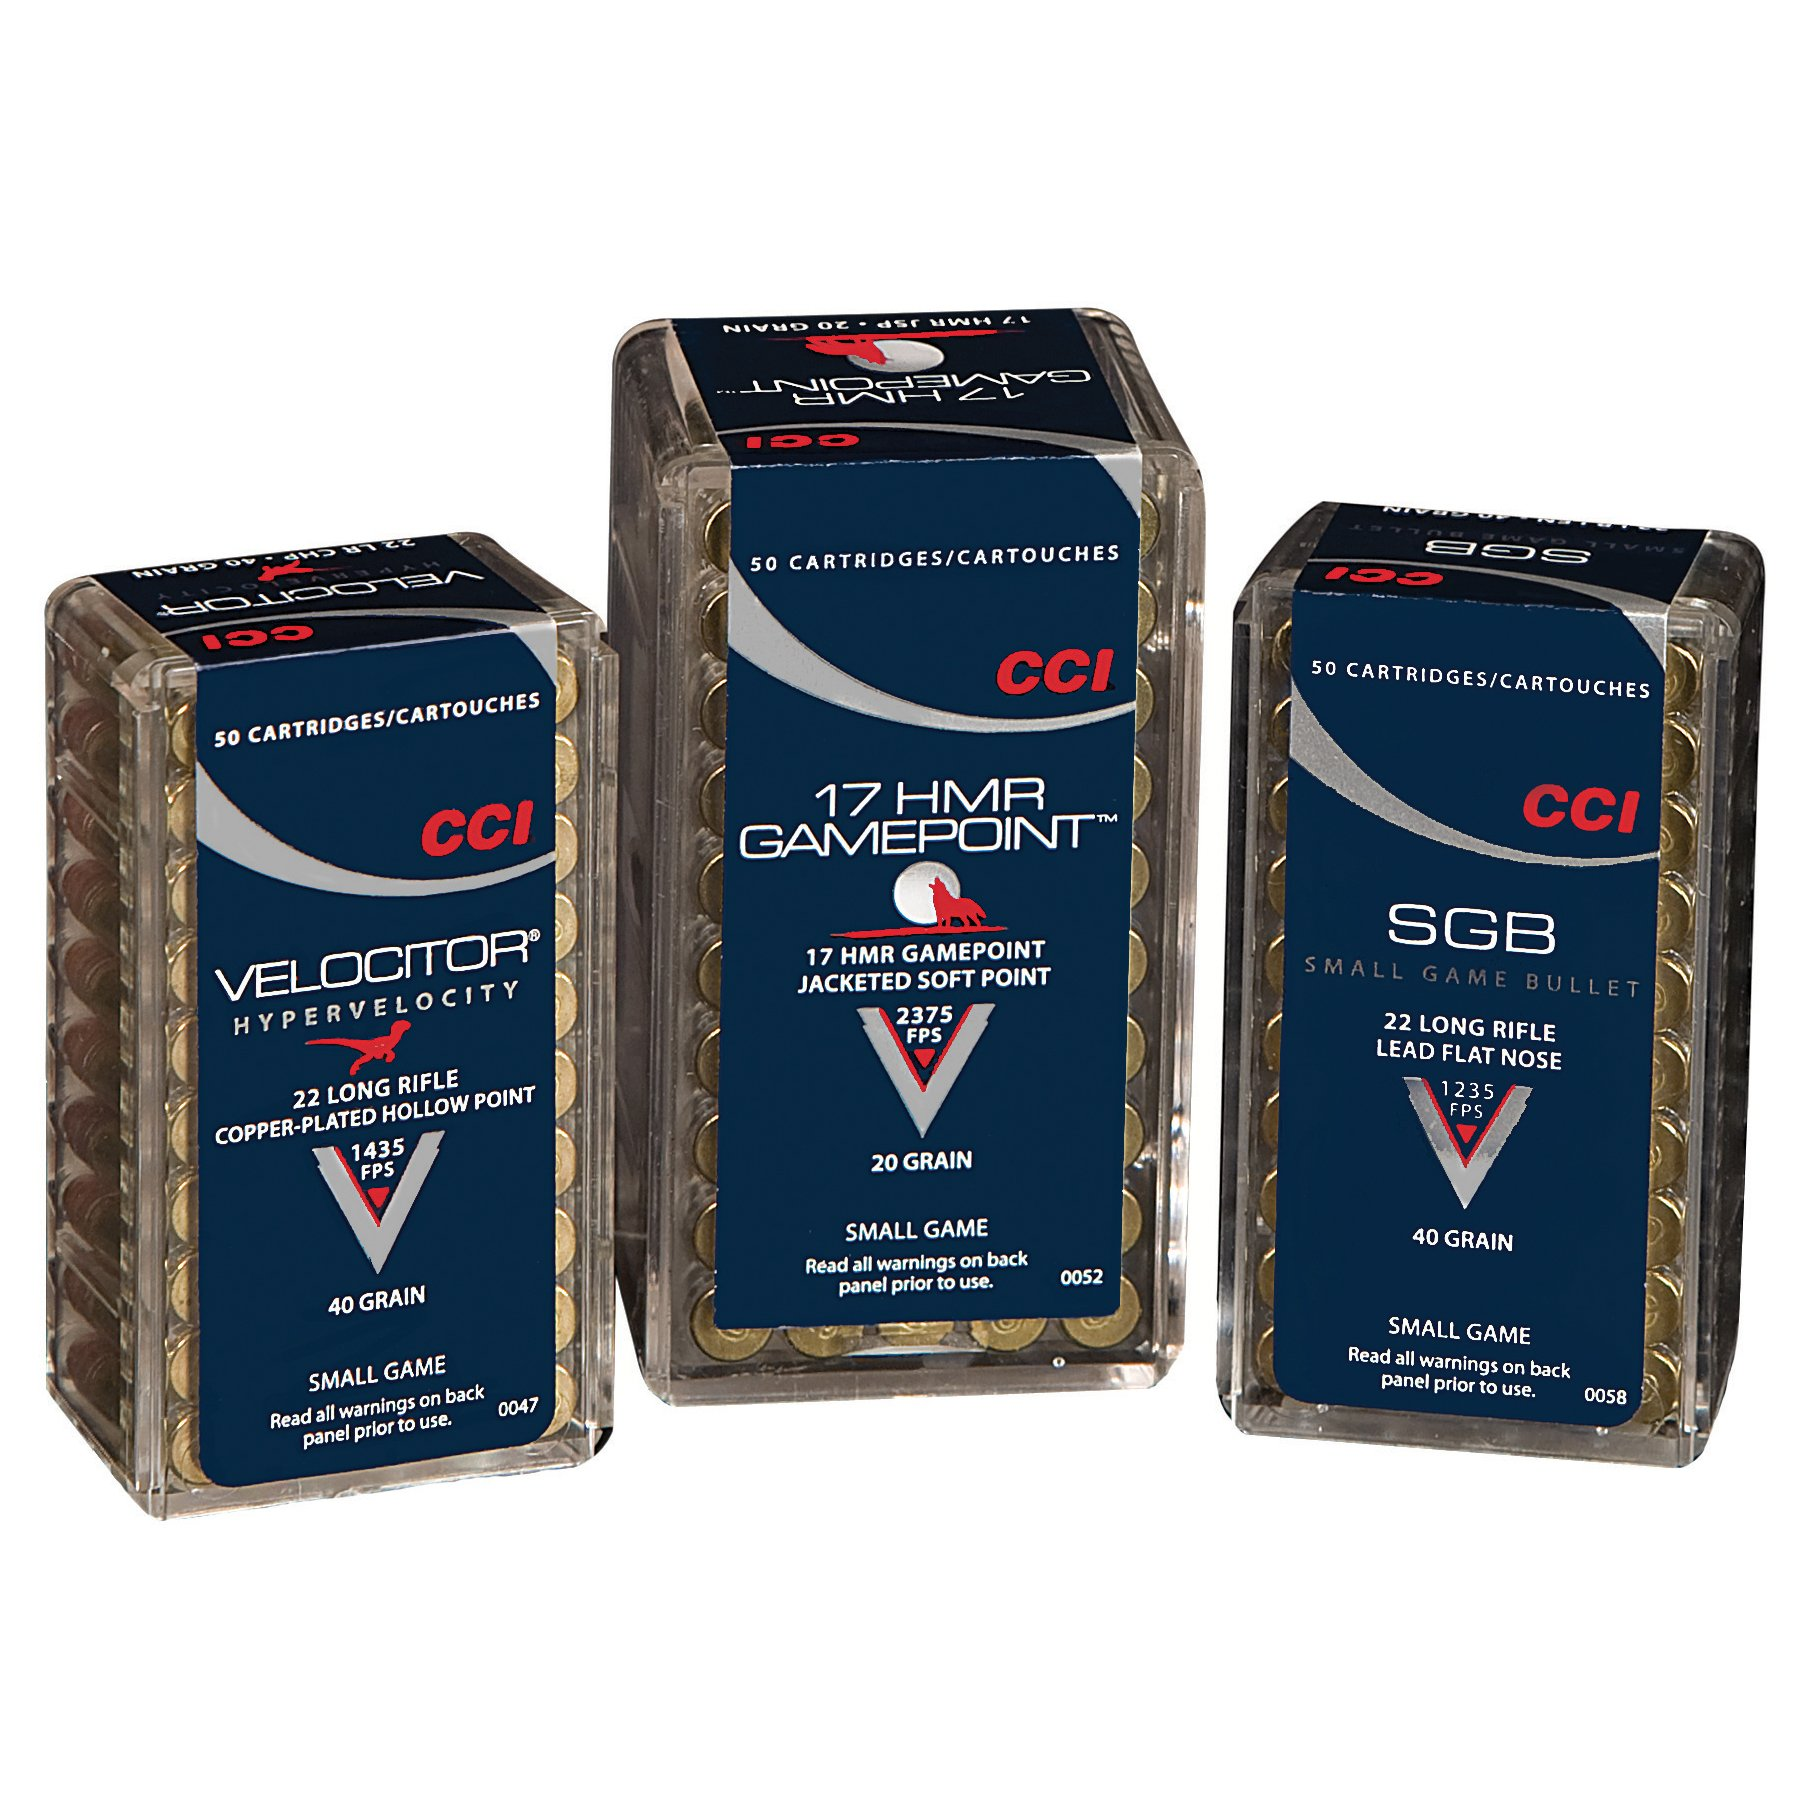 CCI Velociter Small Game Ammunition, .22 LR, 40-gr, CPHP